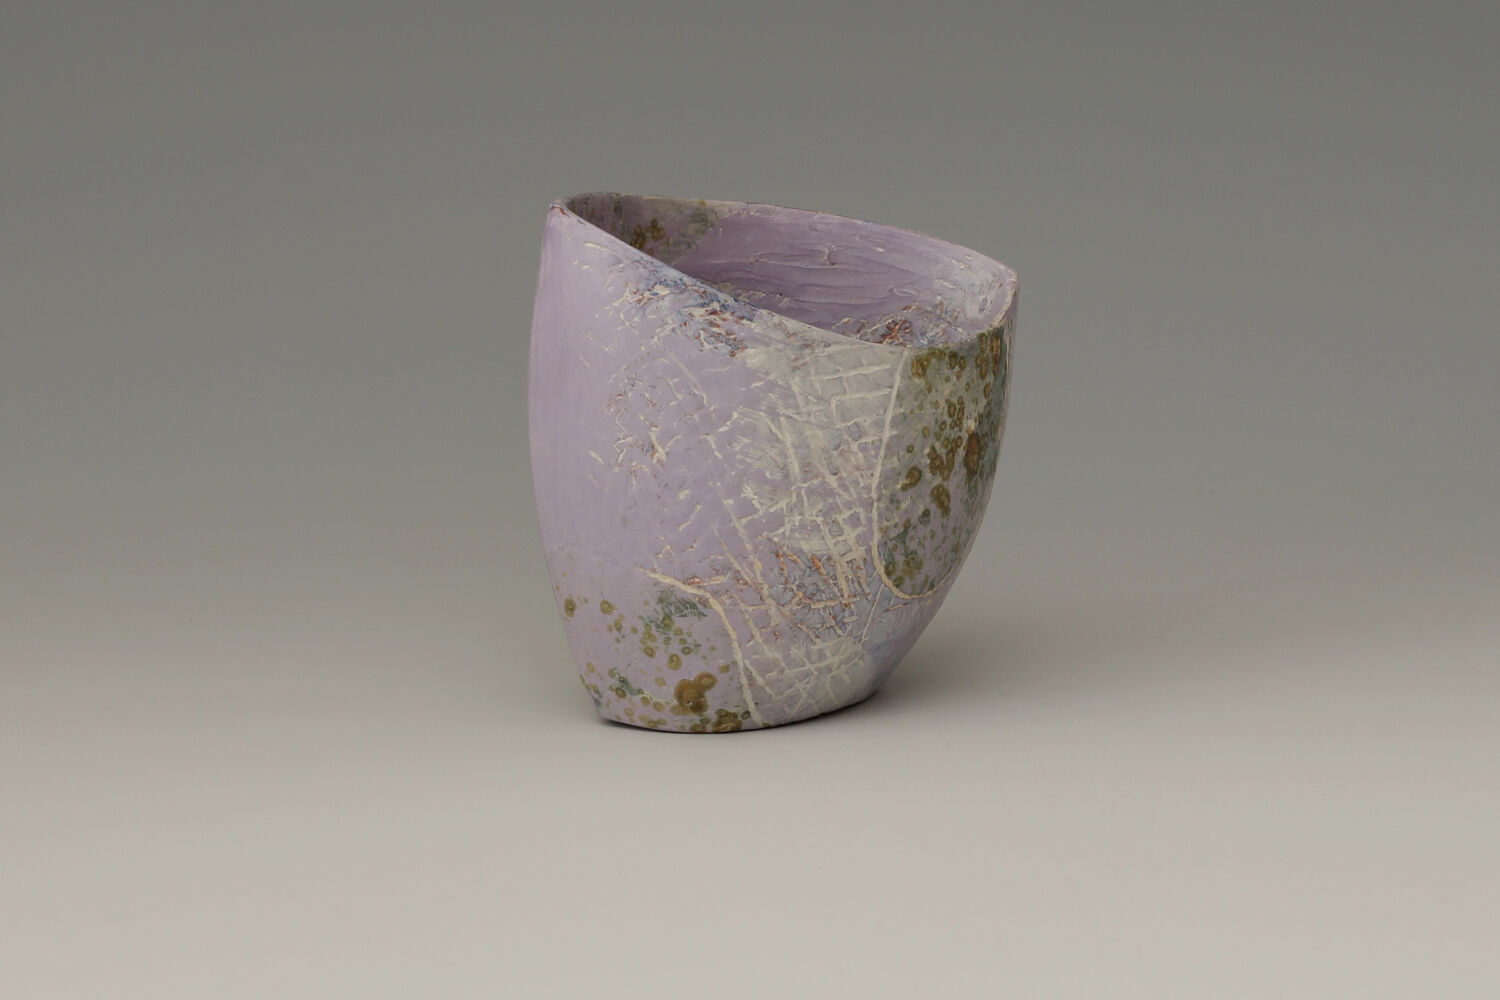 Carolyn Genders Ceramic Earthenware Vessel 'Speckled Violet ll'